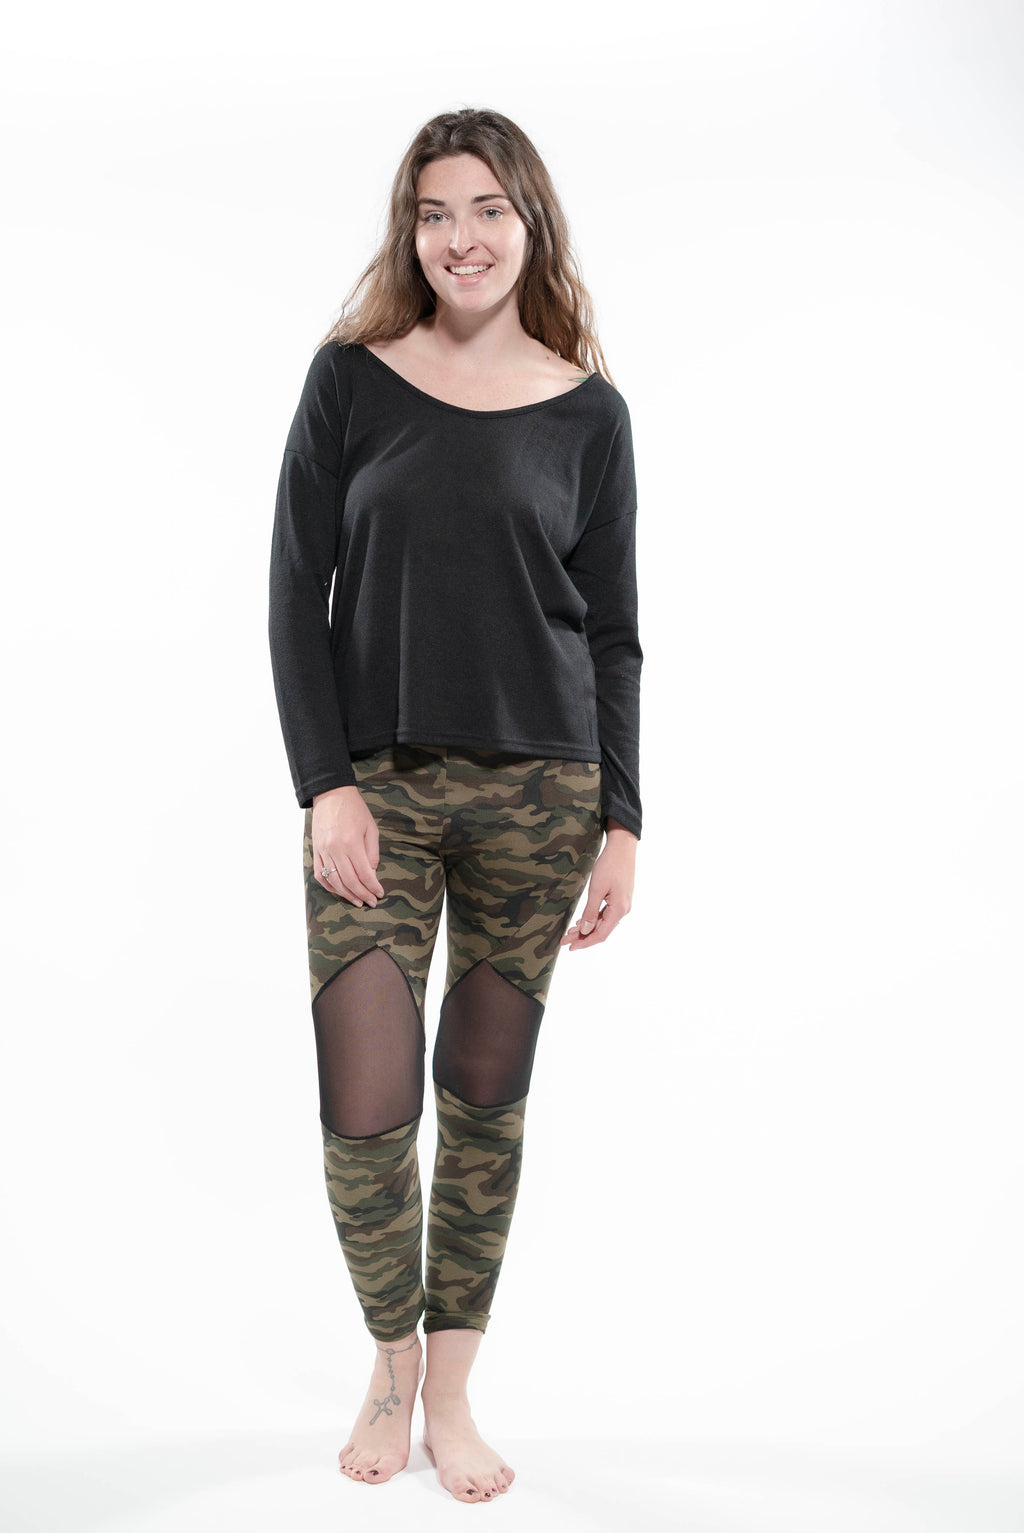 Camo Print Leggings Multi